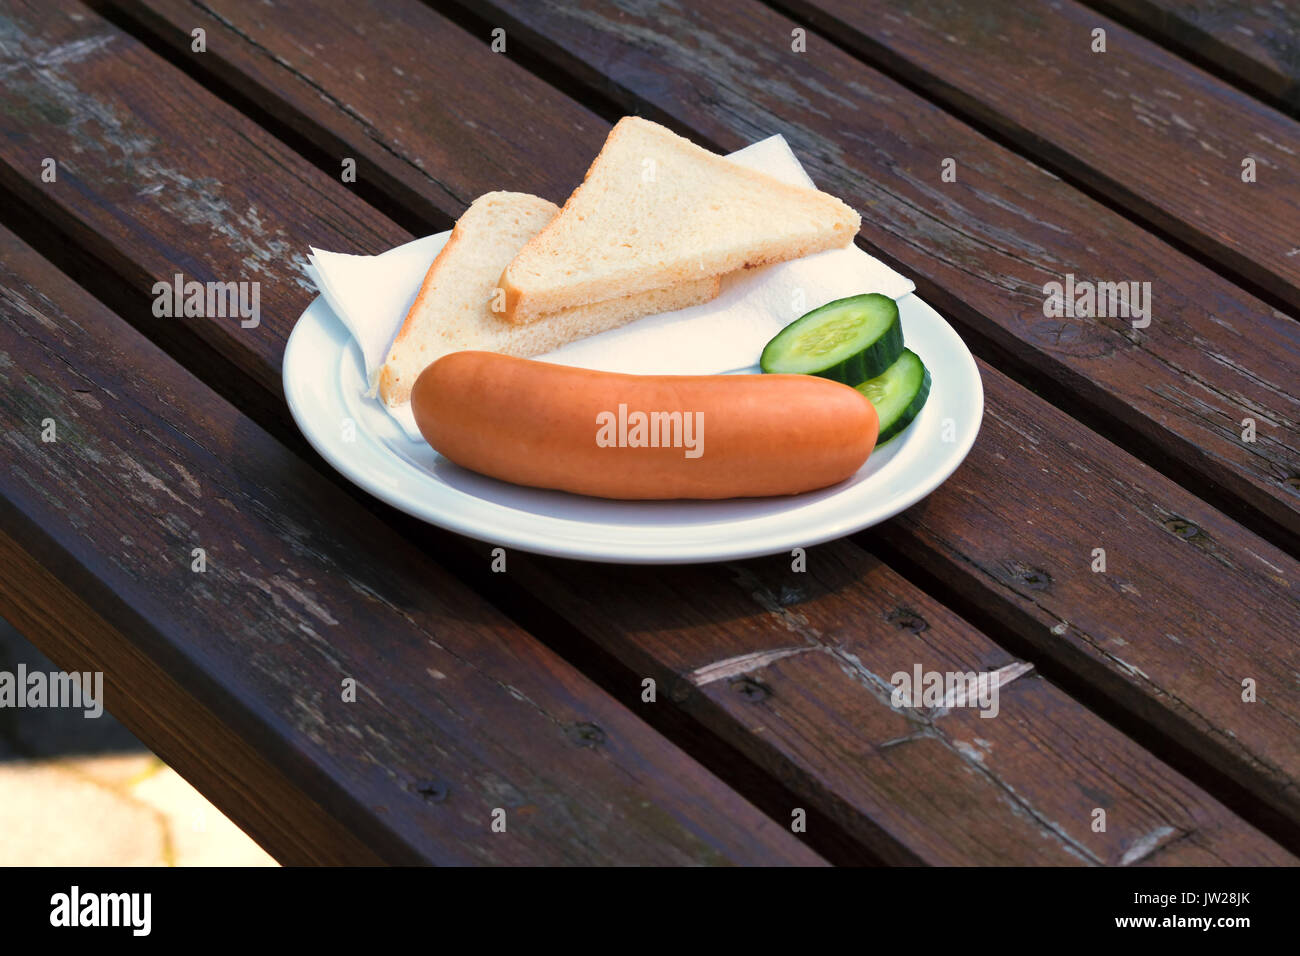 Bock sausage, wieners or Frankfurther sausage with toast and cucumbers on a white plate. Stock Photo